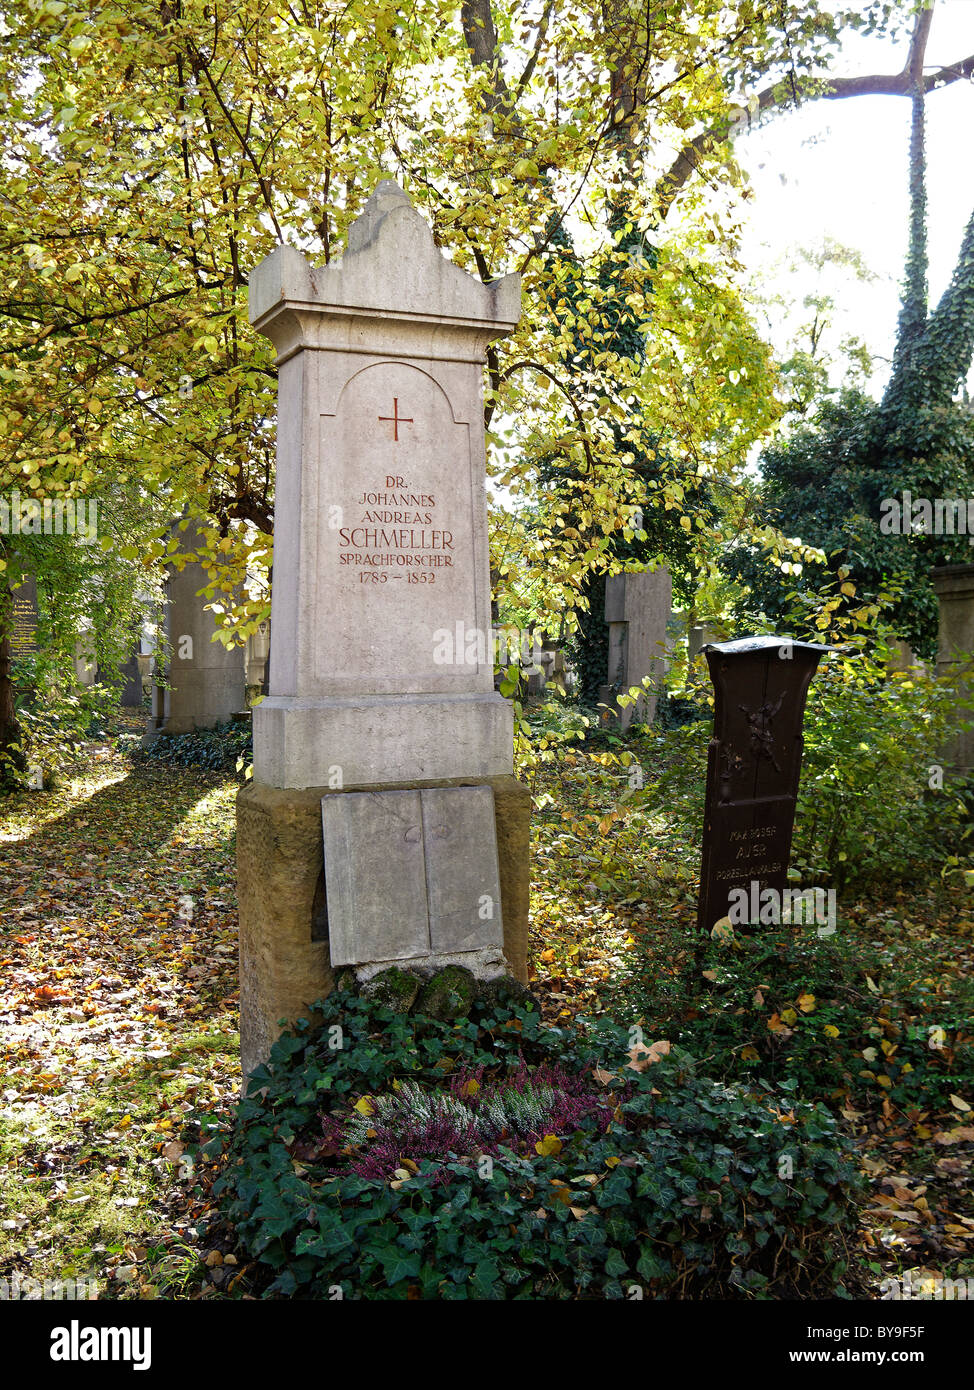 Grave of J. A. Schmeller (1785-1852), Southern Cemetery Munich, Upper Bavaria, Bavaria, Germany, Europe - Stock Image